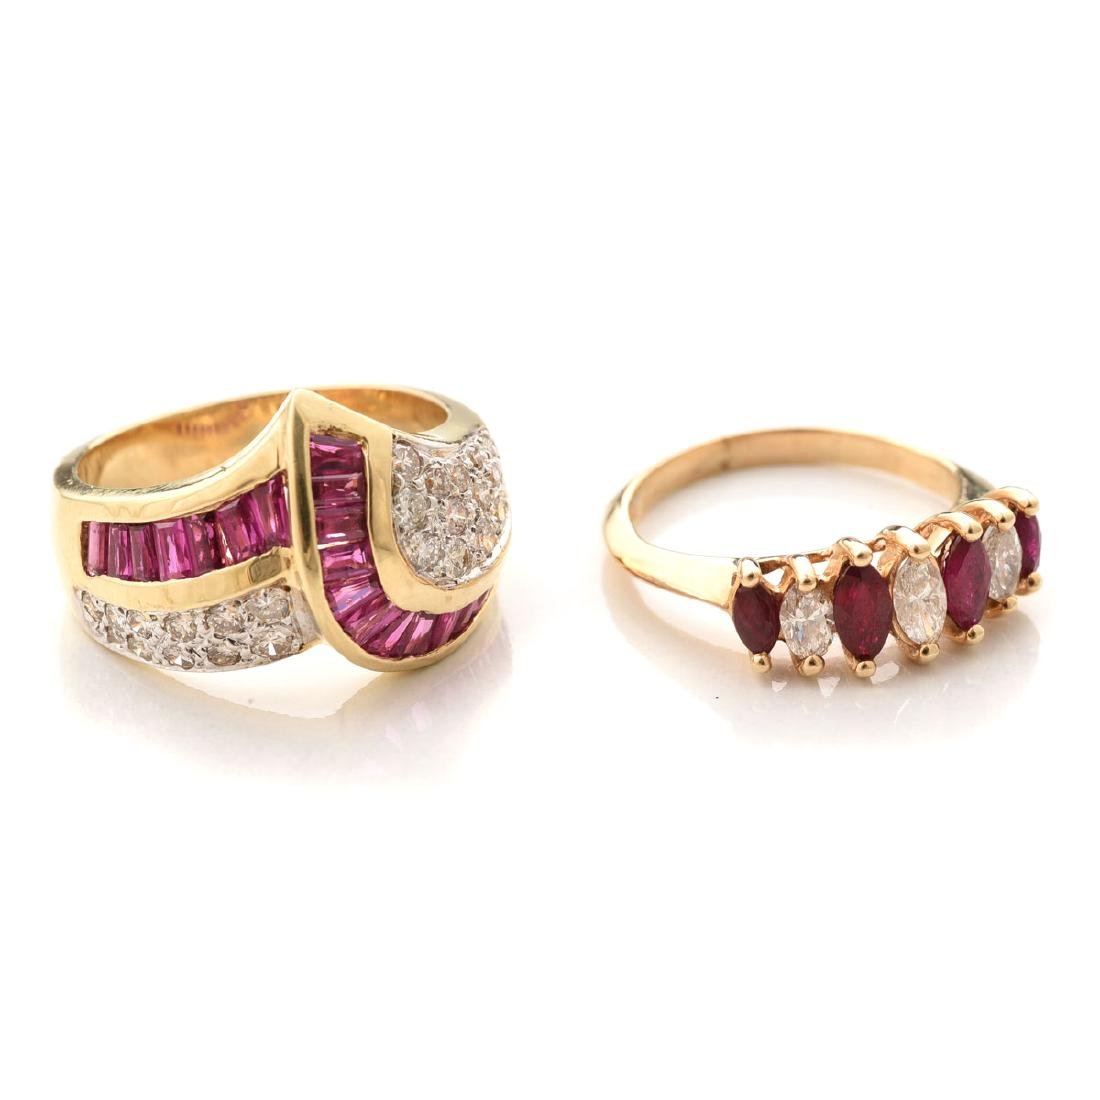 Collection of Two Diamond, Ruby, 14k Yellow Gold Rings.